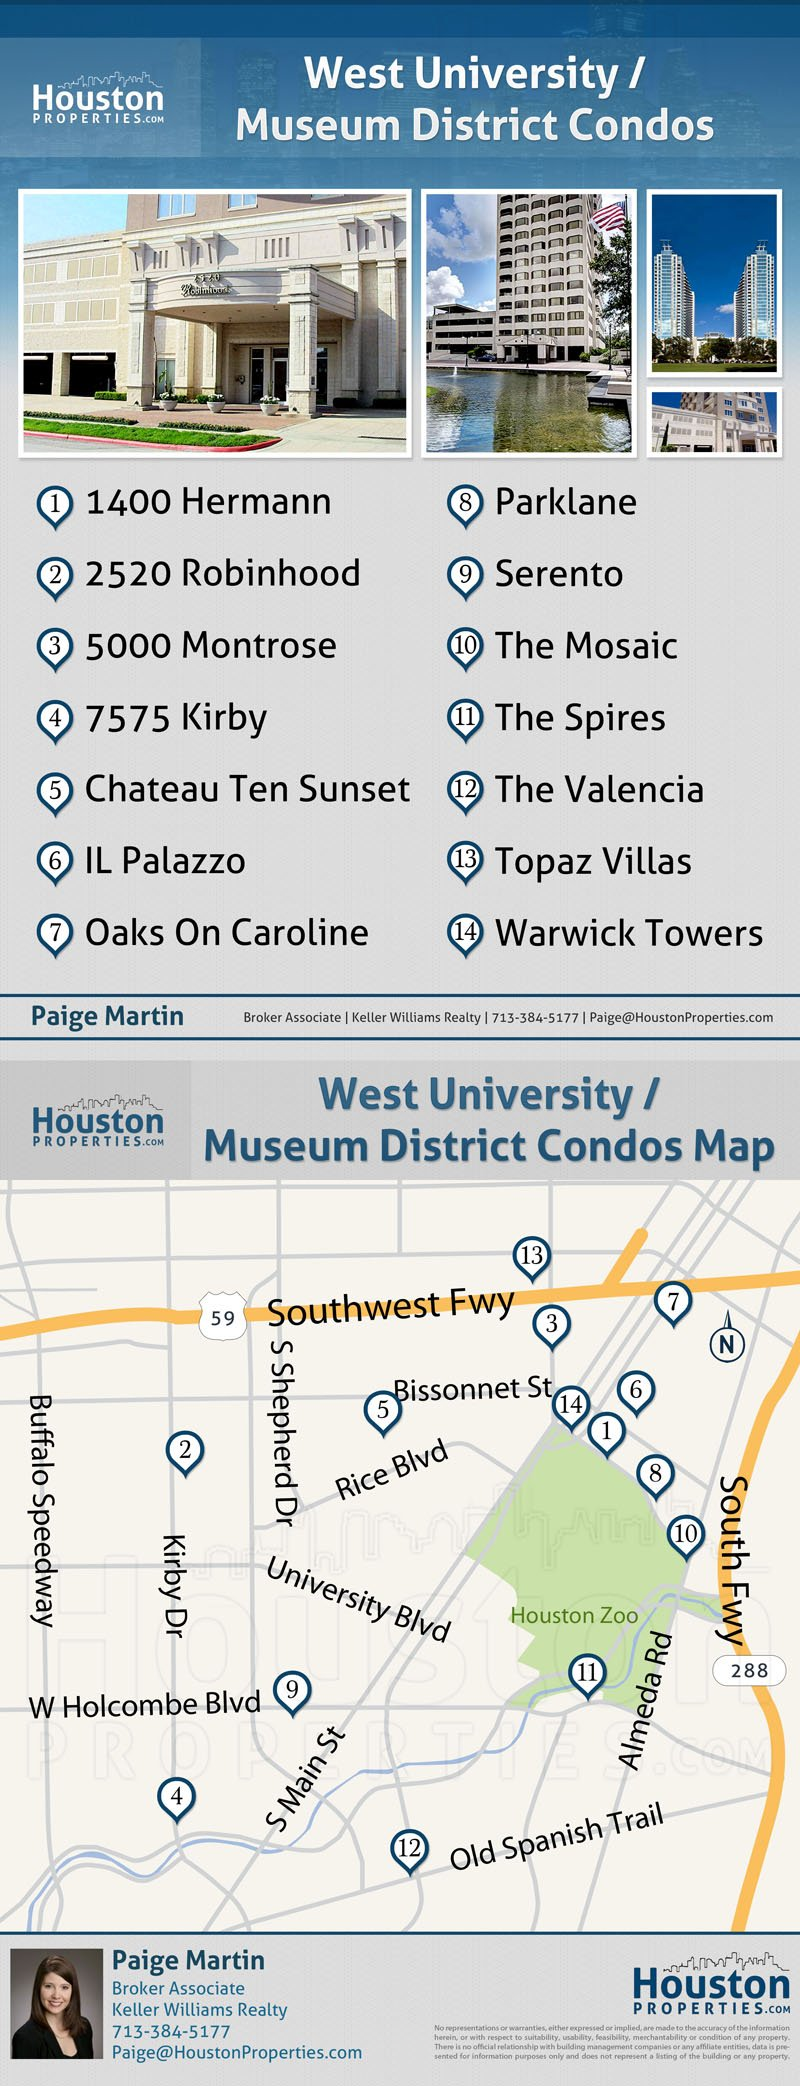 Museum District Condos Map